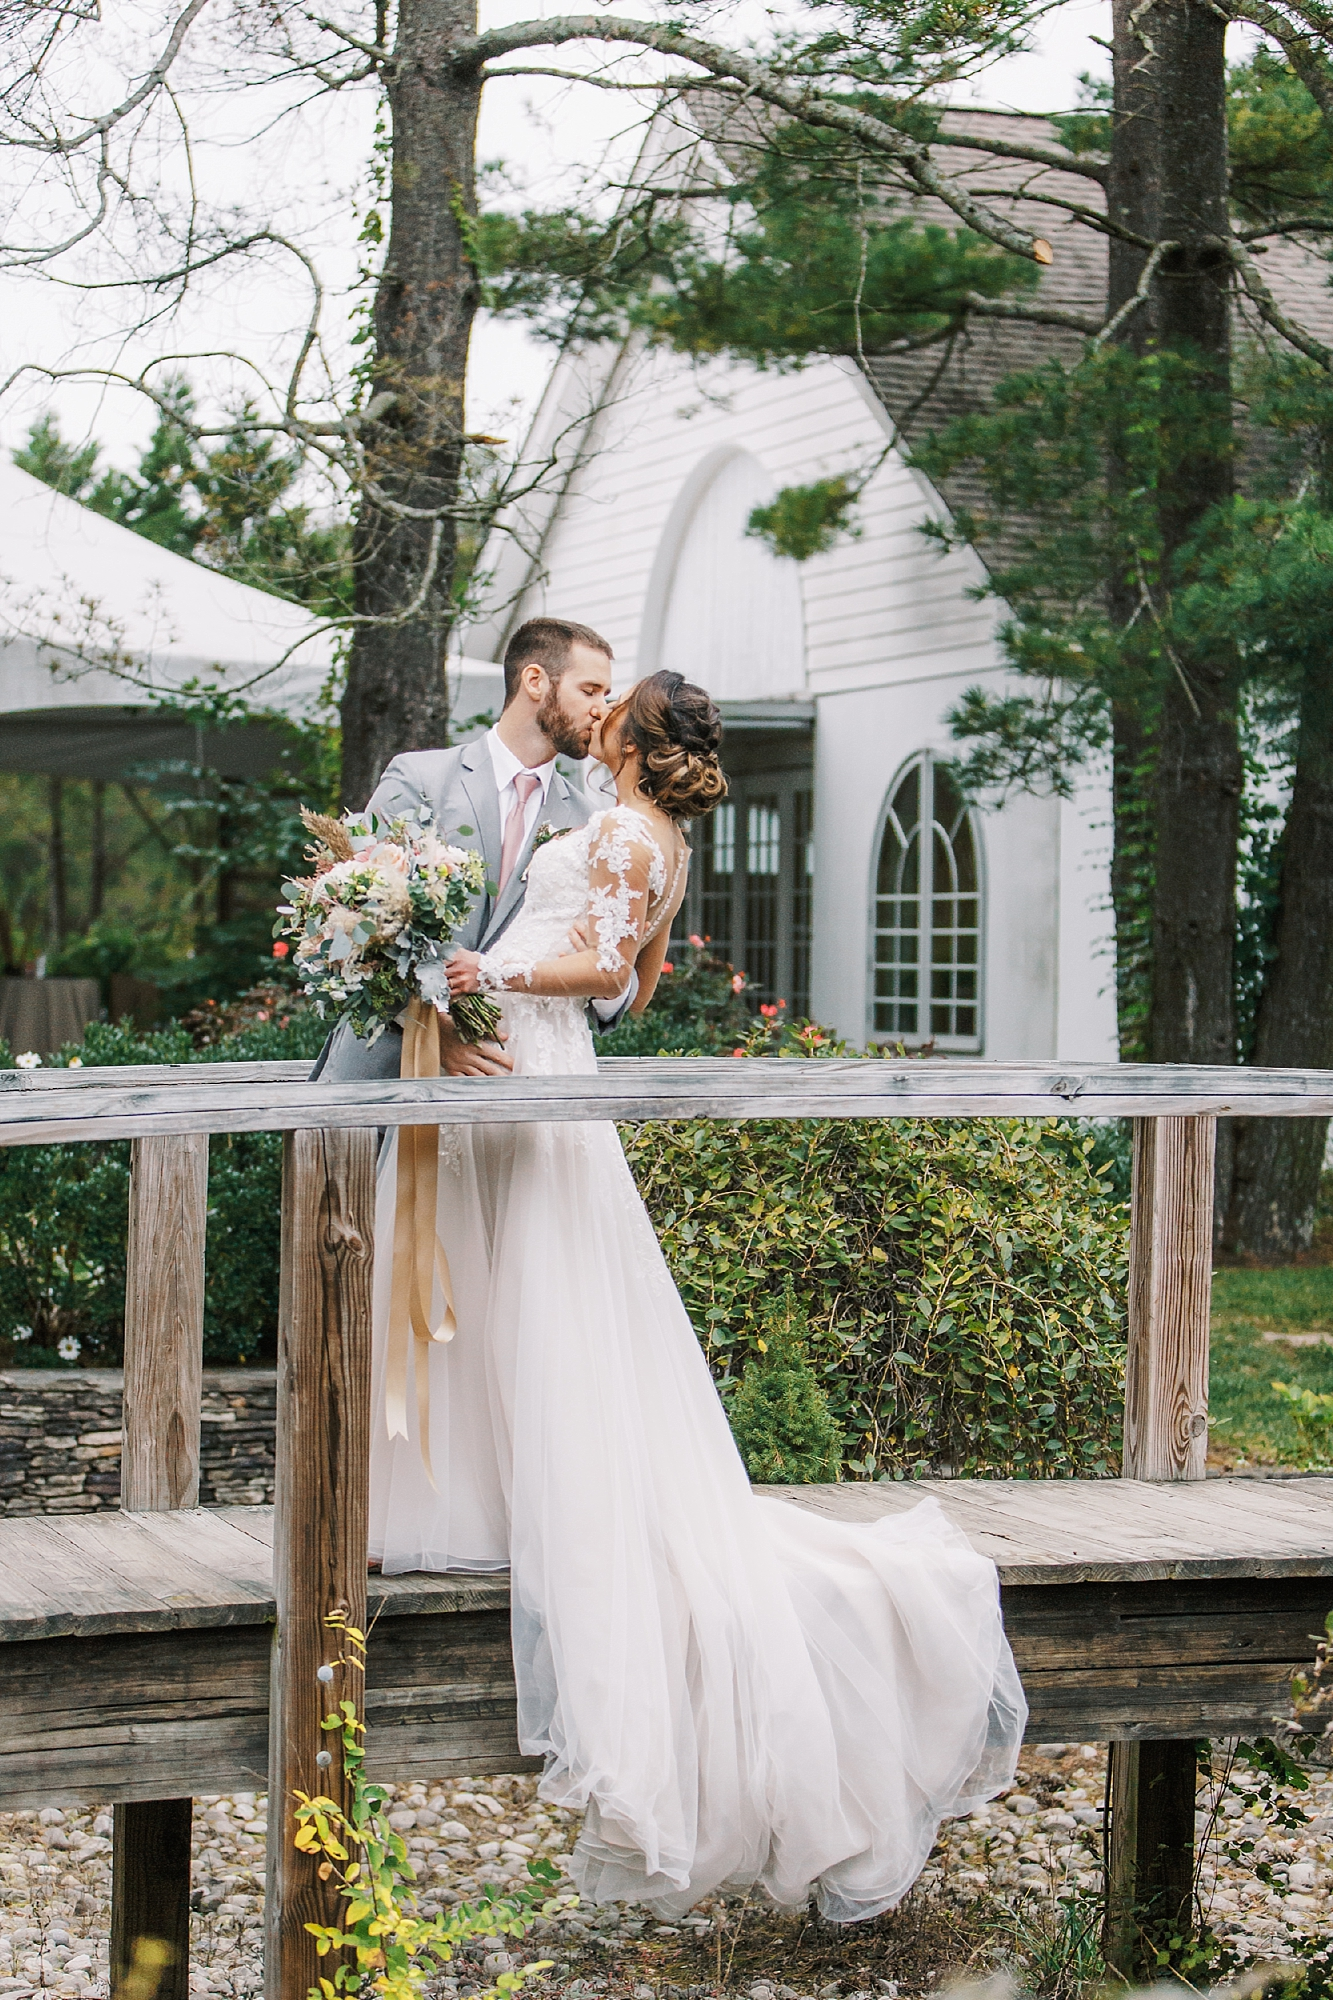 Sweet Garden Wedding Photography Abbie Holmes Estate in Cape May NJ by Magdalena Studios 0055